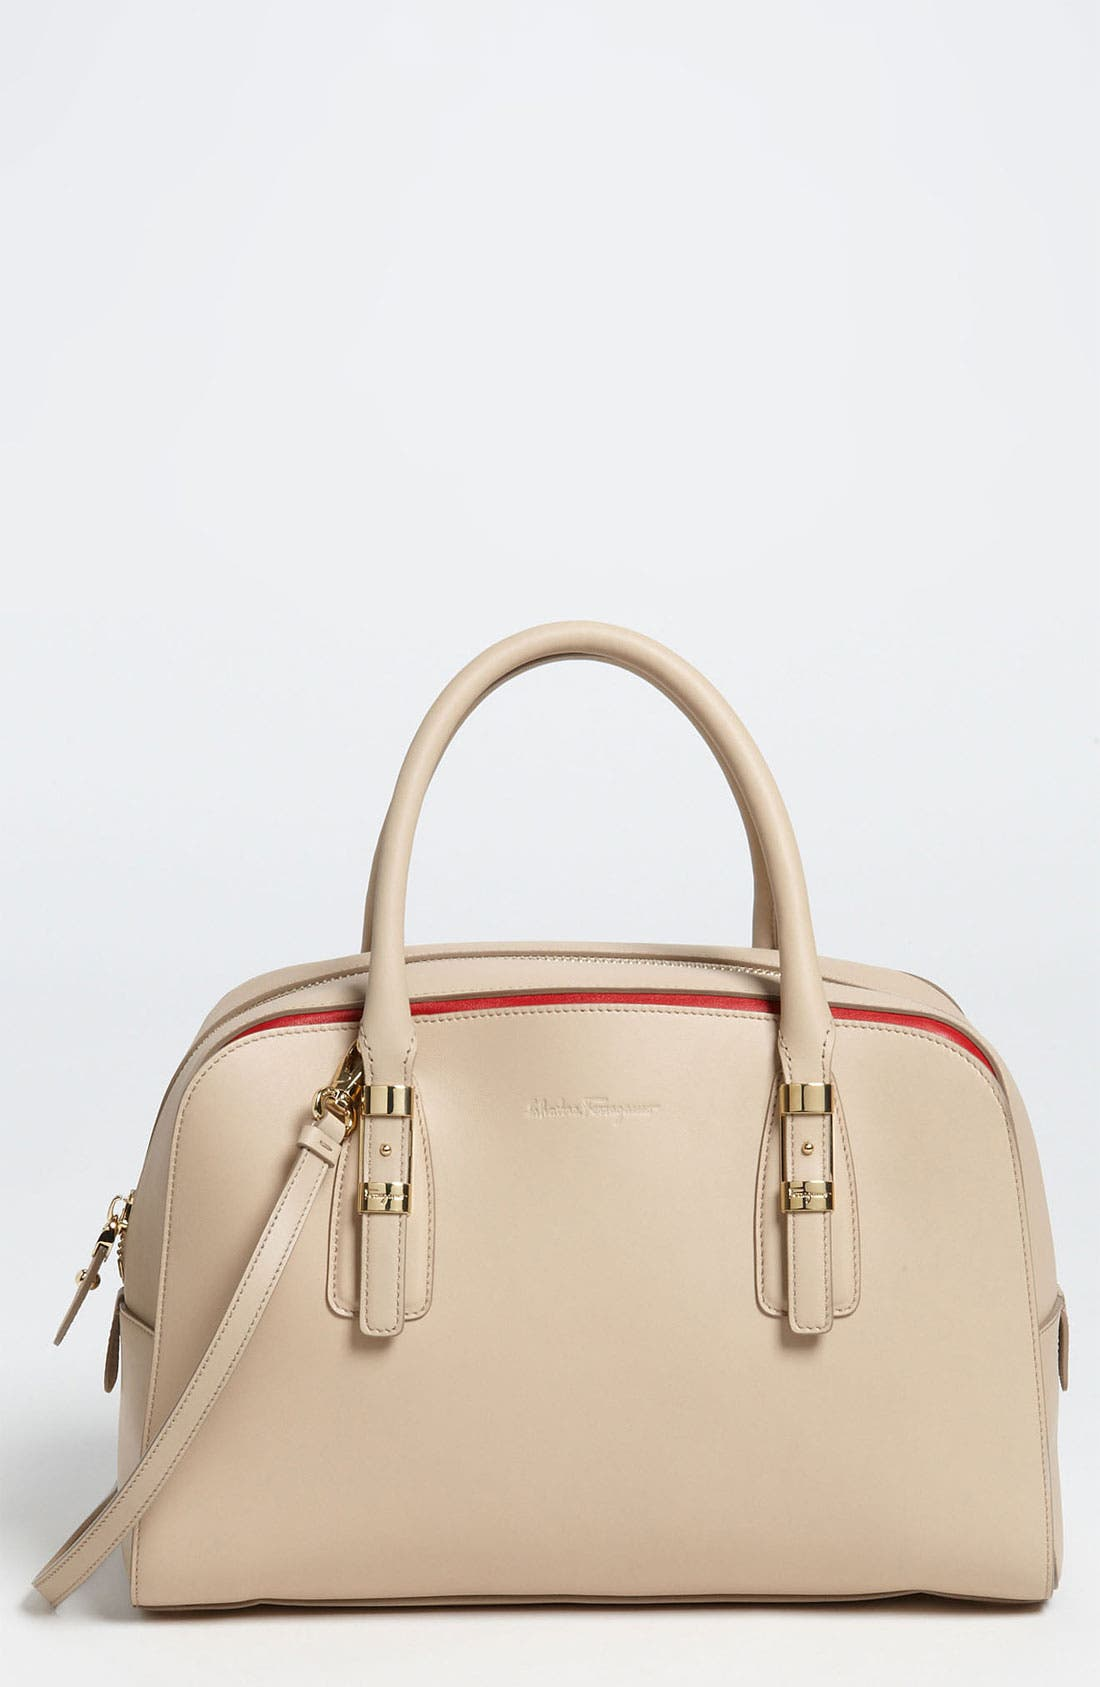 Alternate Image 1 Selected - Salvatore Ferragamo 'Emmy - Small' Leather Crossbody Bag